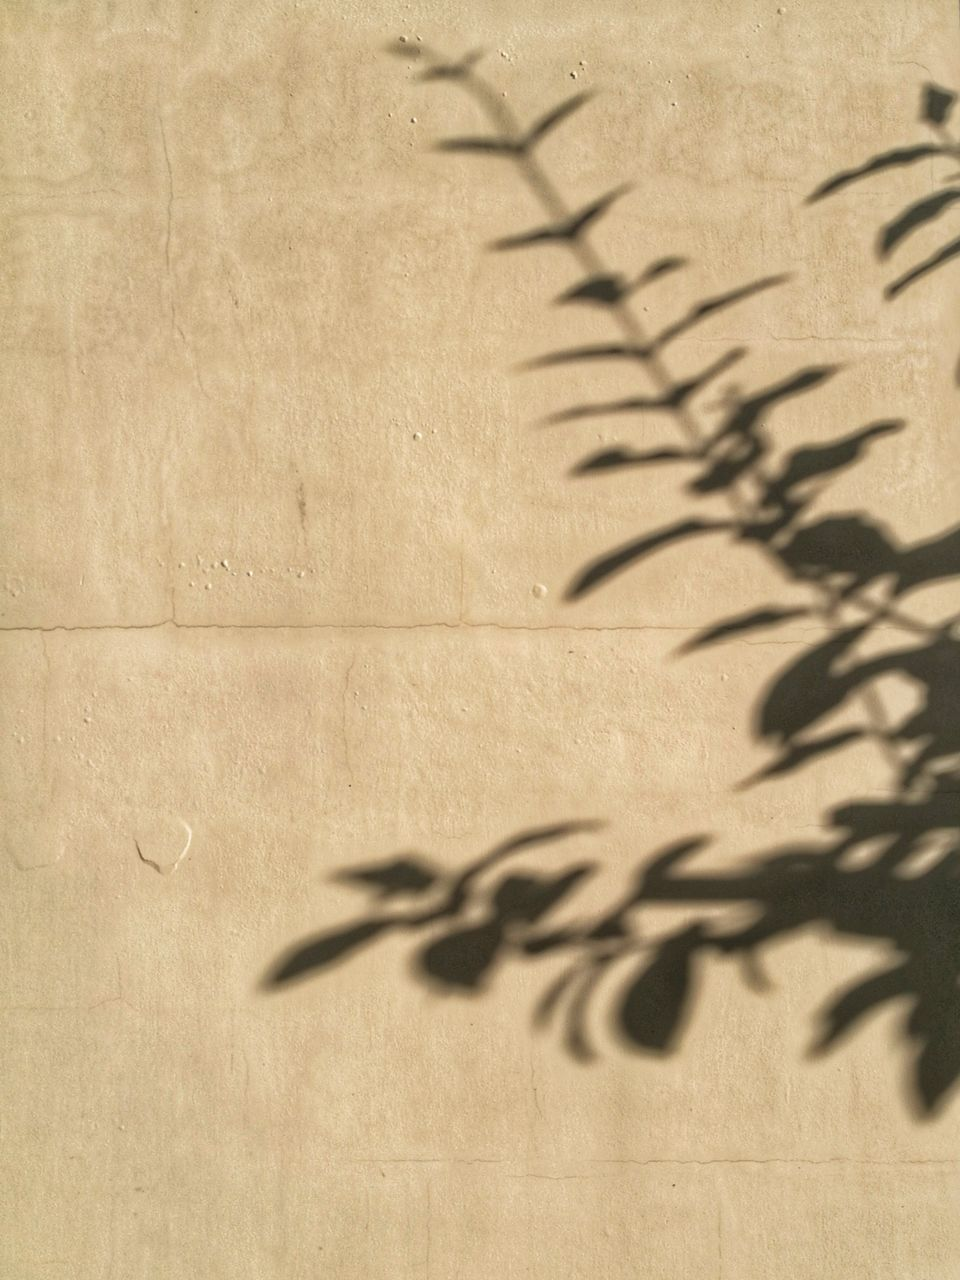 shadow, no people, indoors, paper, day, close-up